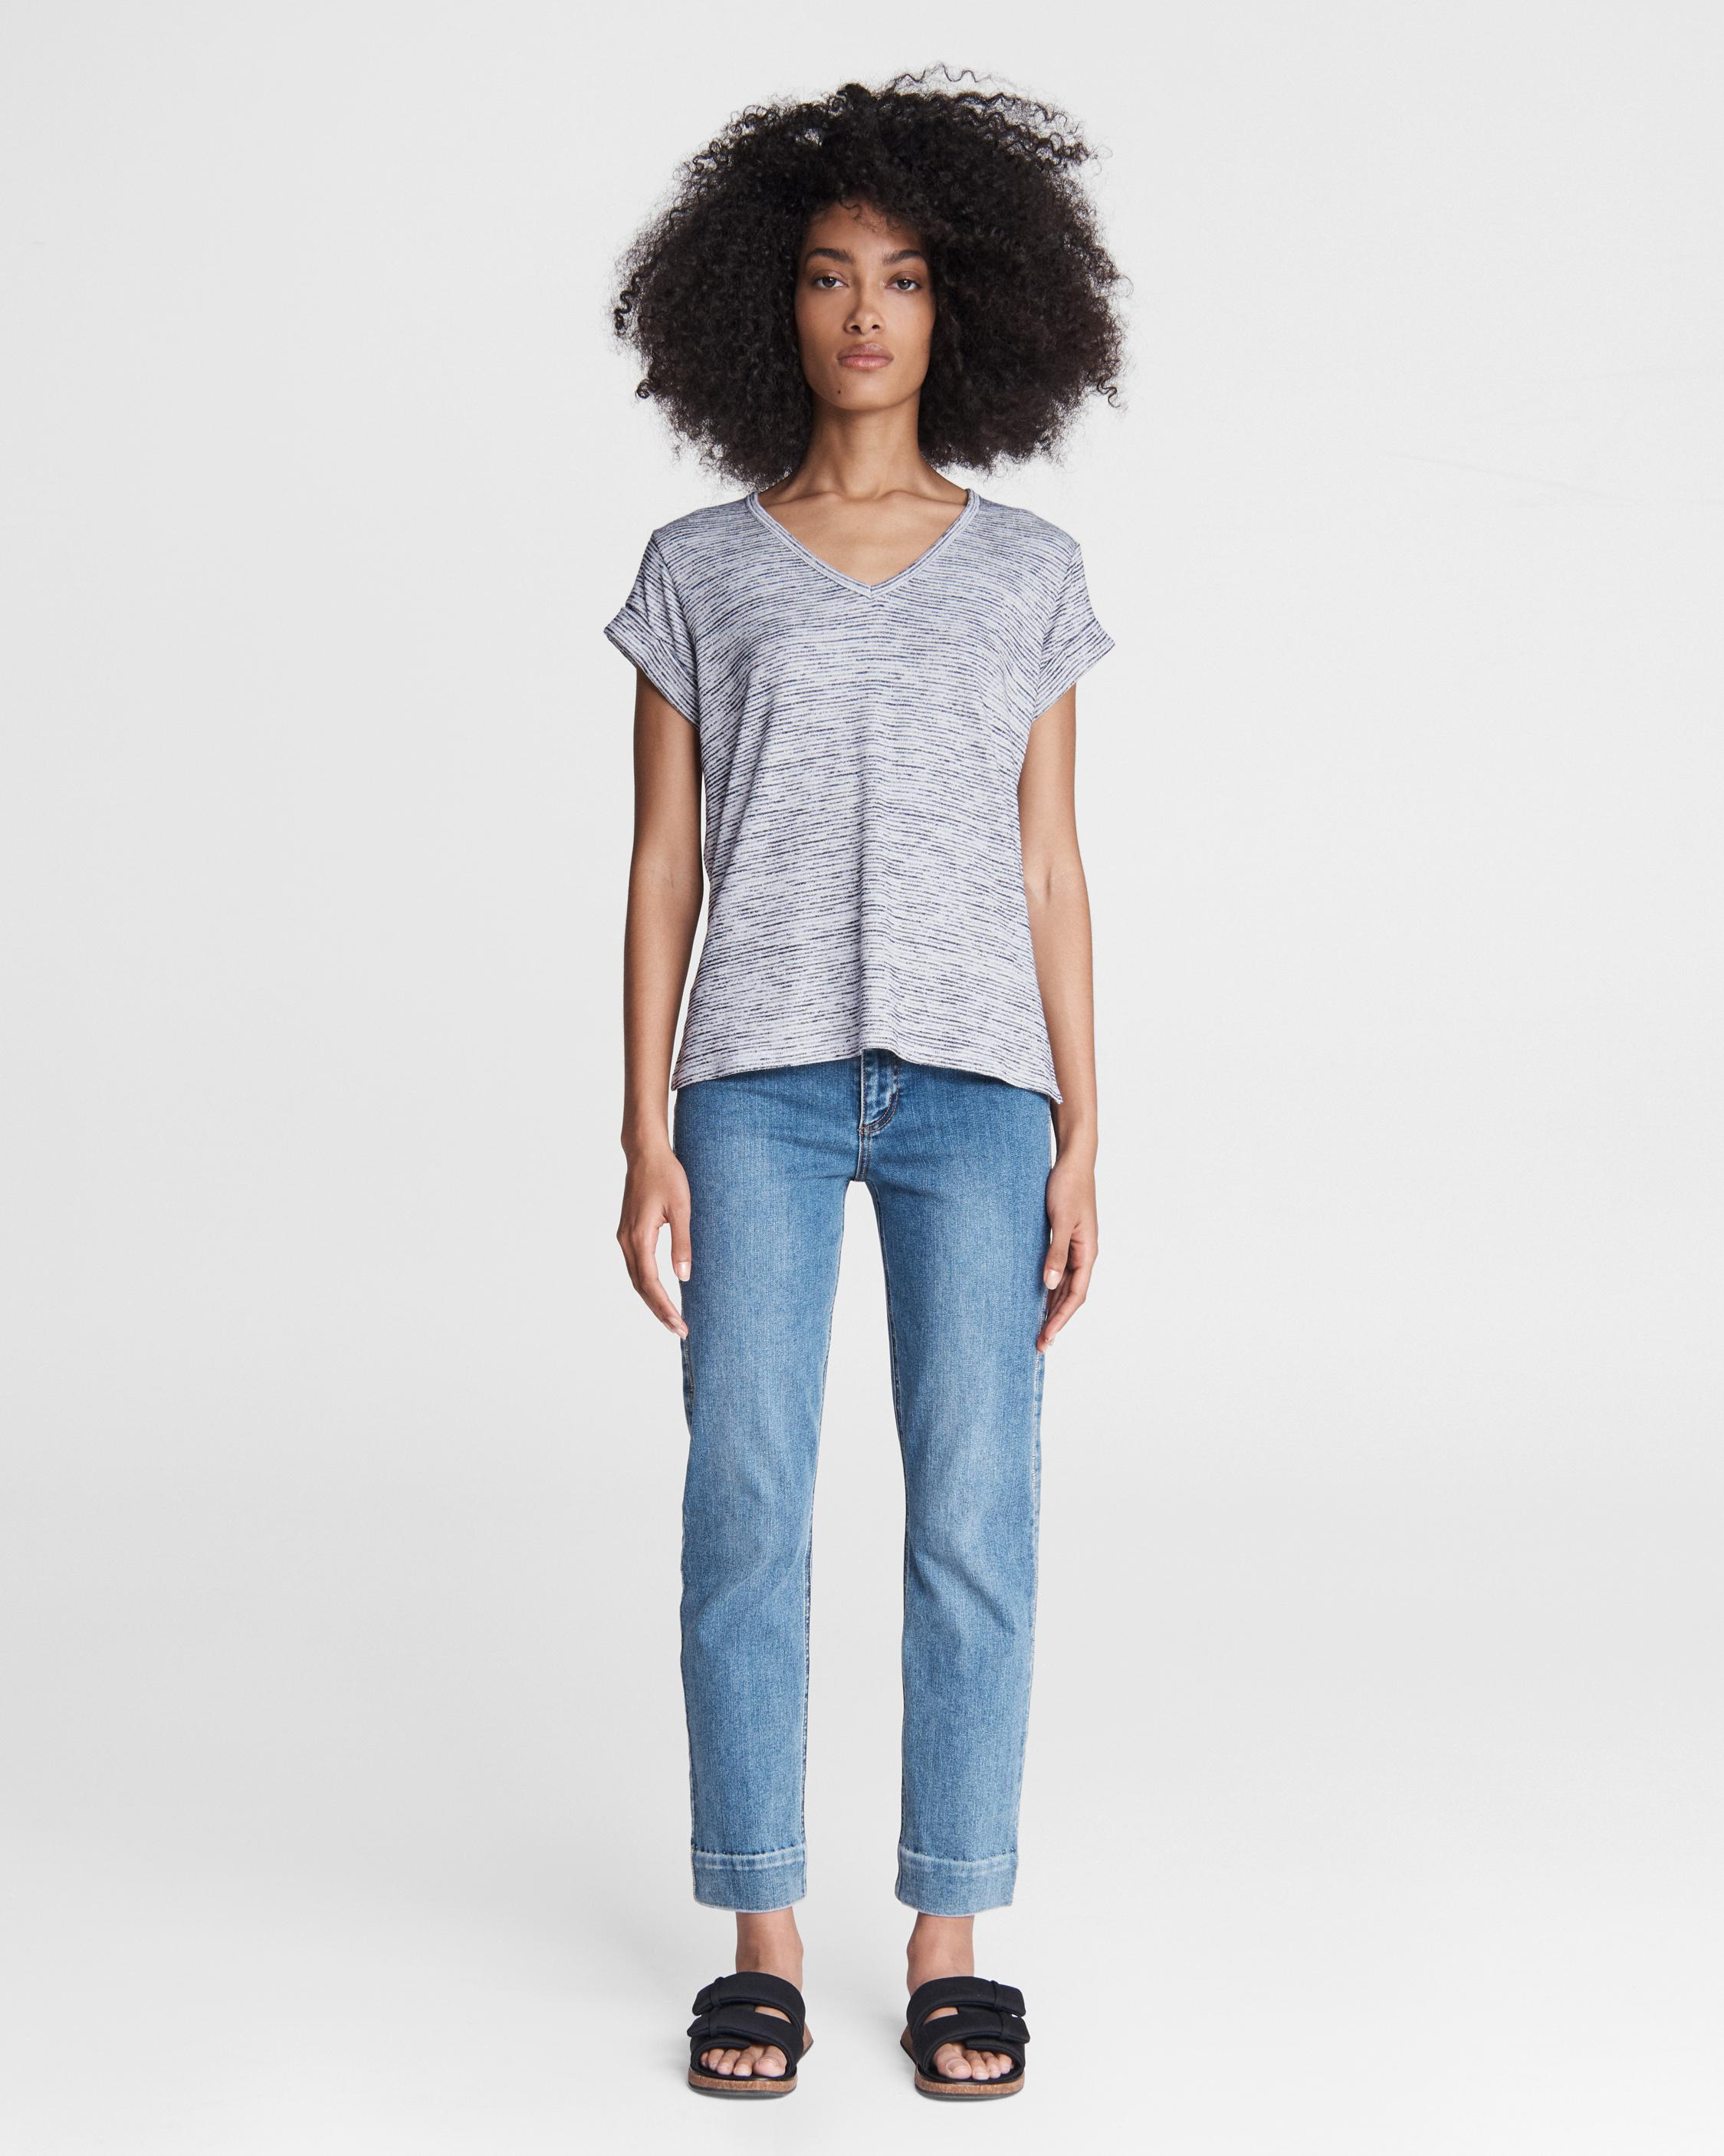 The knit v-neck striped tee 1